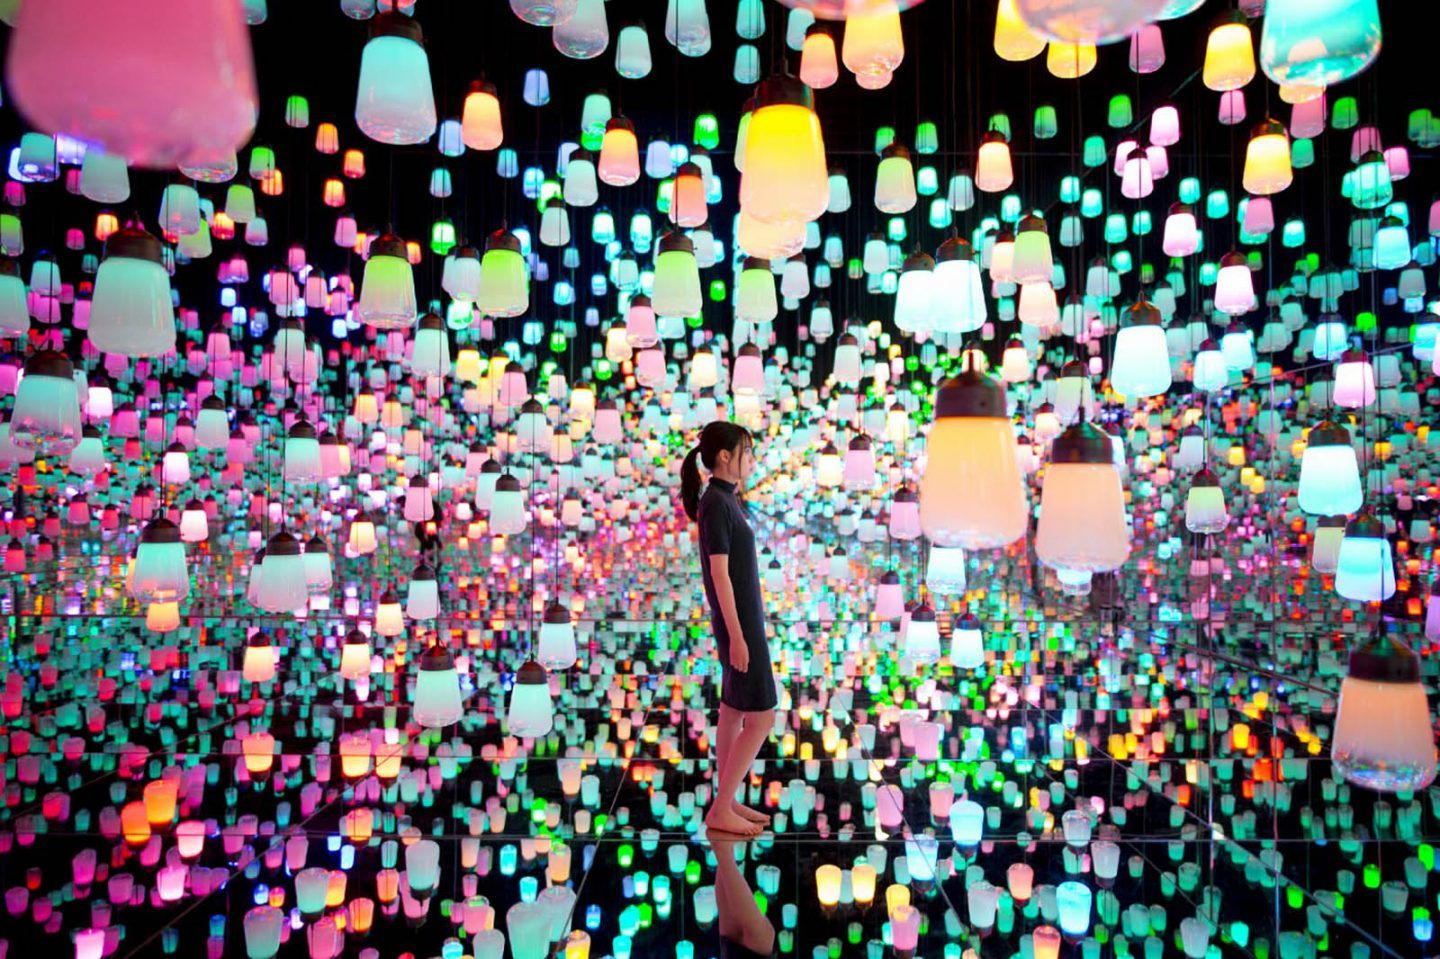 iGNANT-Art-teamLab-Borderless-Digital-Museum-006